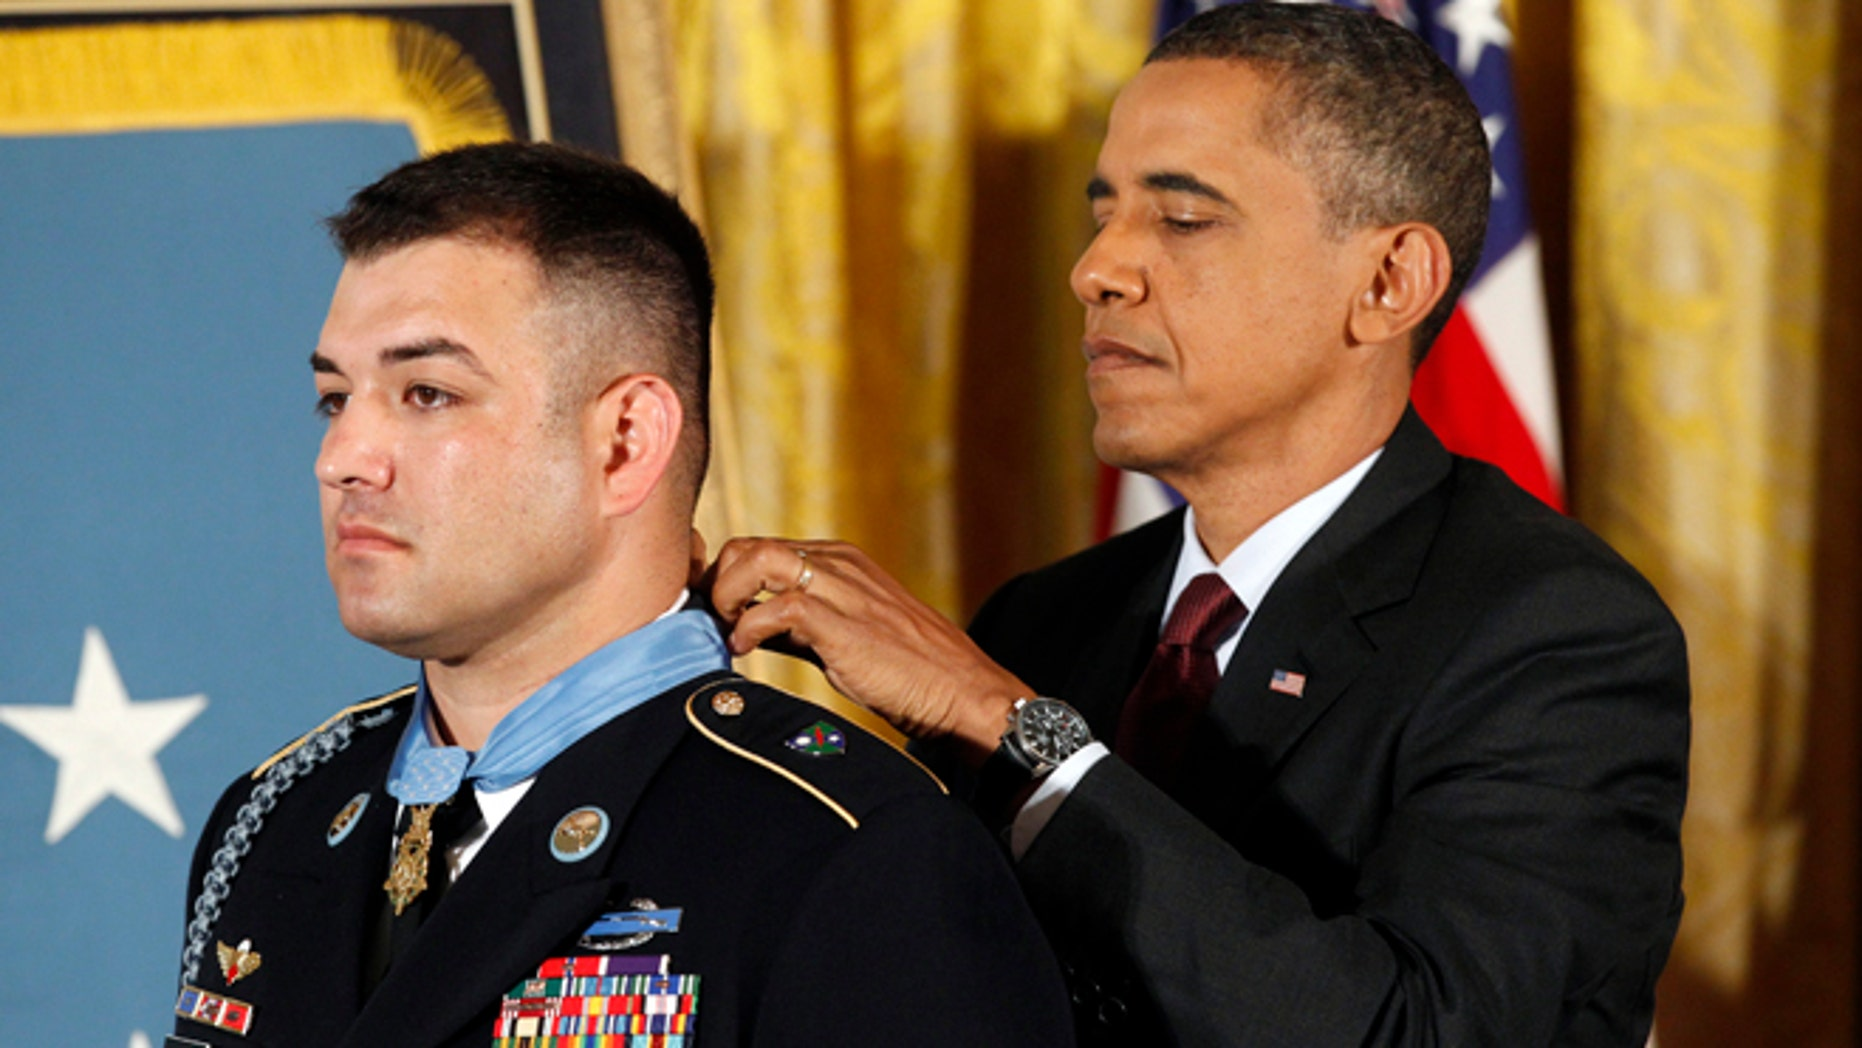 July 12, 2011: President Barack Obama awards Sgt. First Class Leroy Arthur Petry, U.S. Army, the Medal of Honor at the White House.